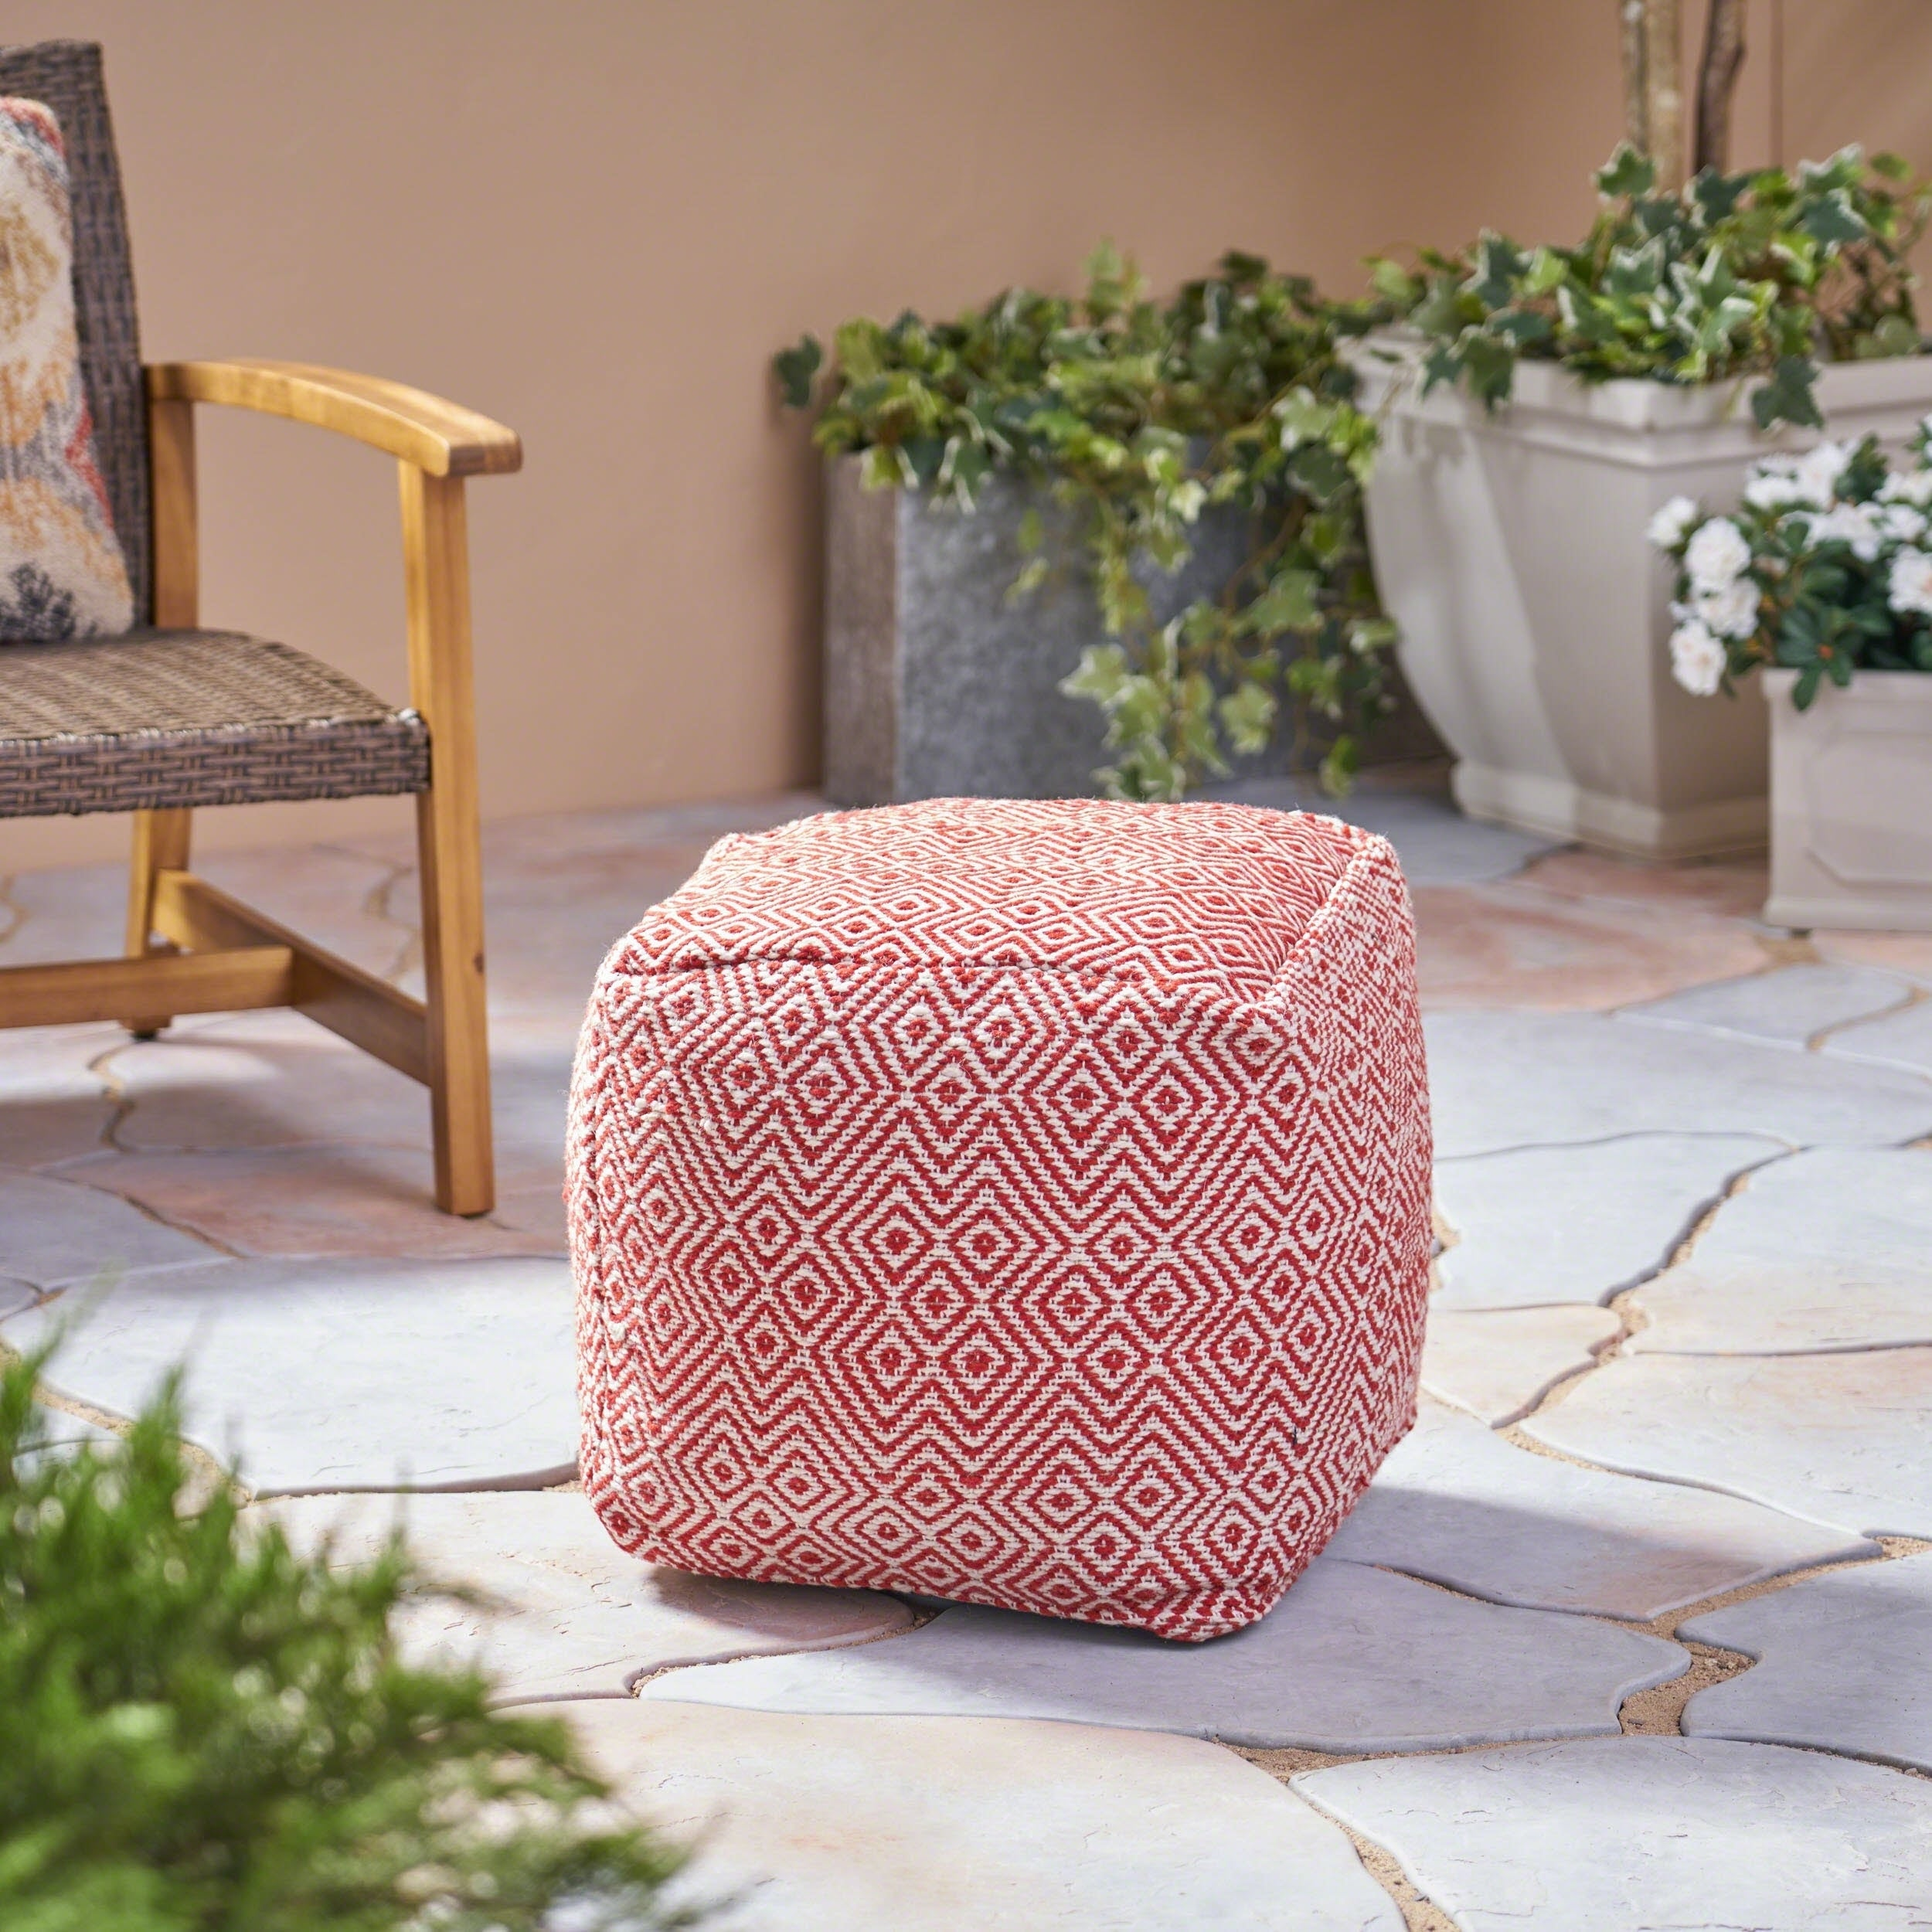 Martos Outdoor Modern Boho Pouf by Christopher Knight Home (ivory with red)